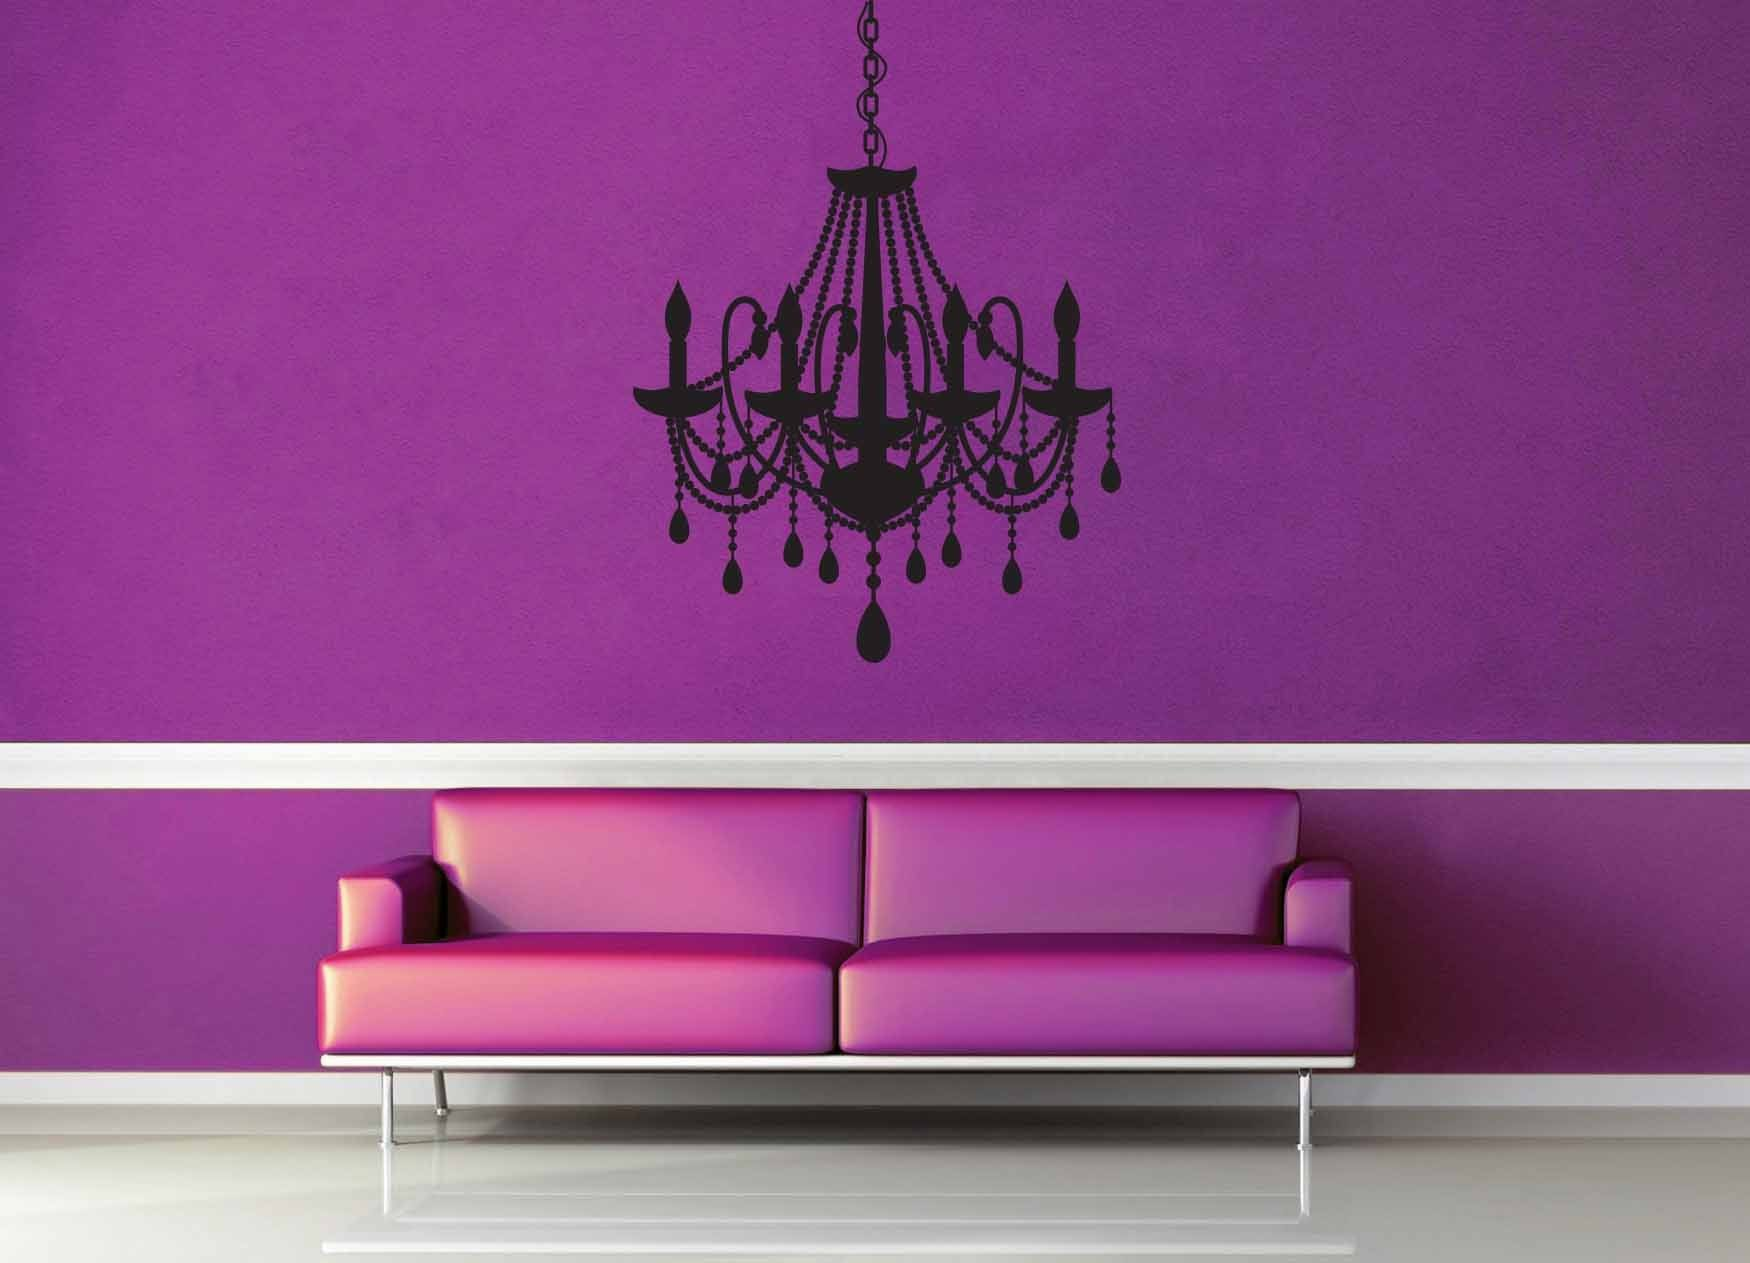 Chandelier - Wall Decal - No 3